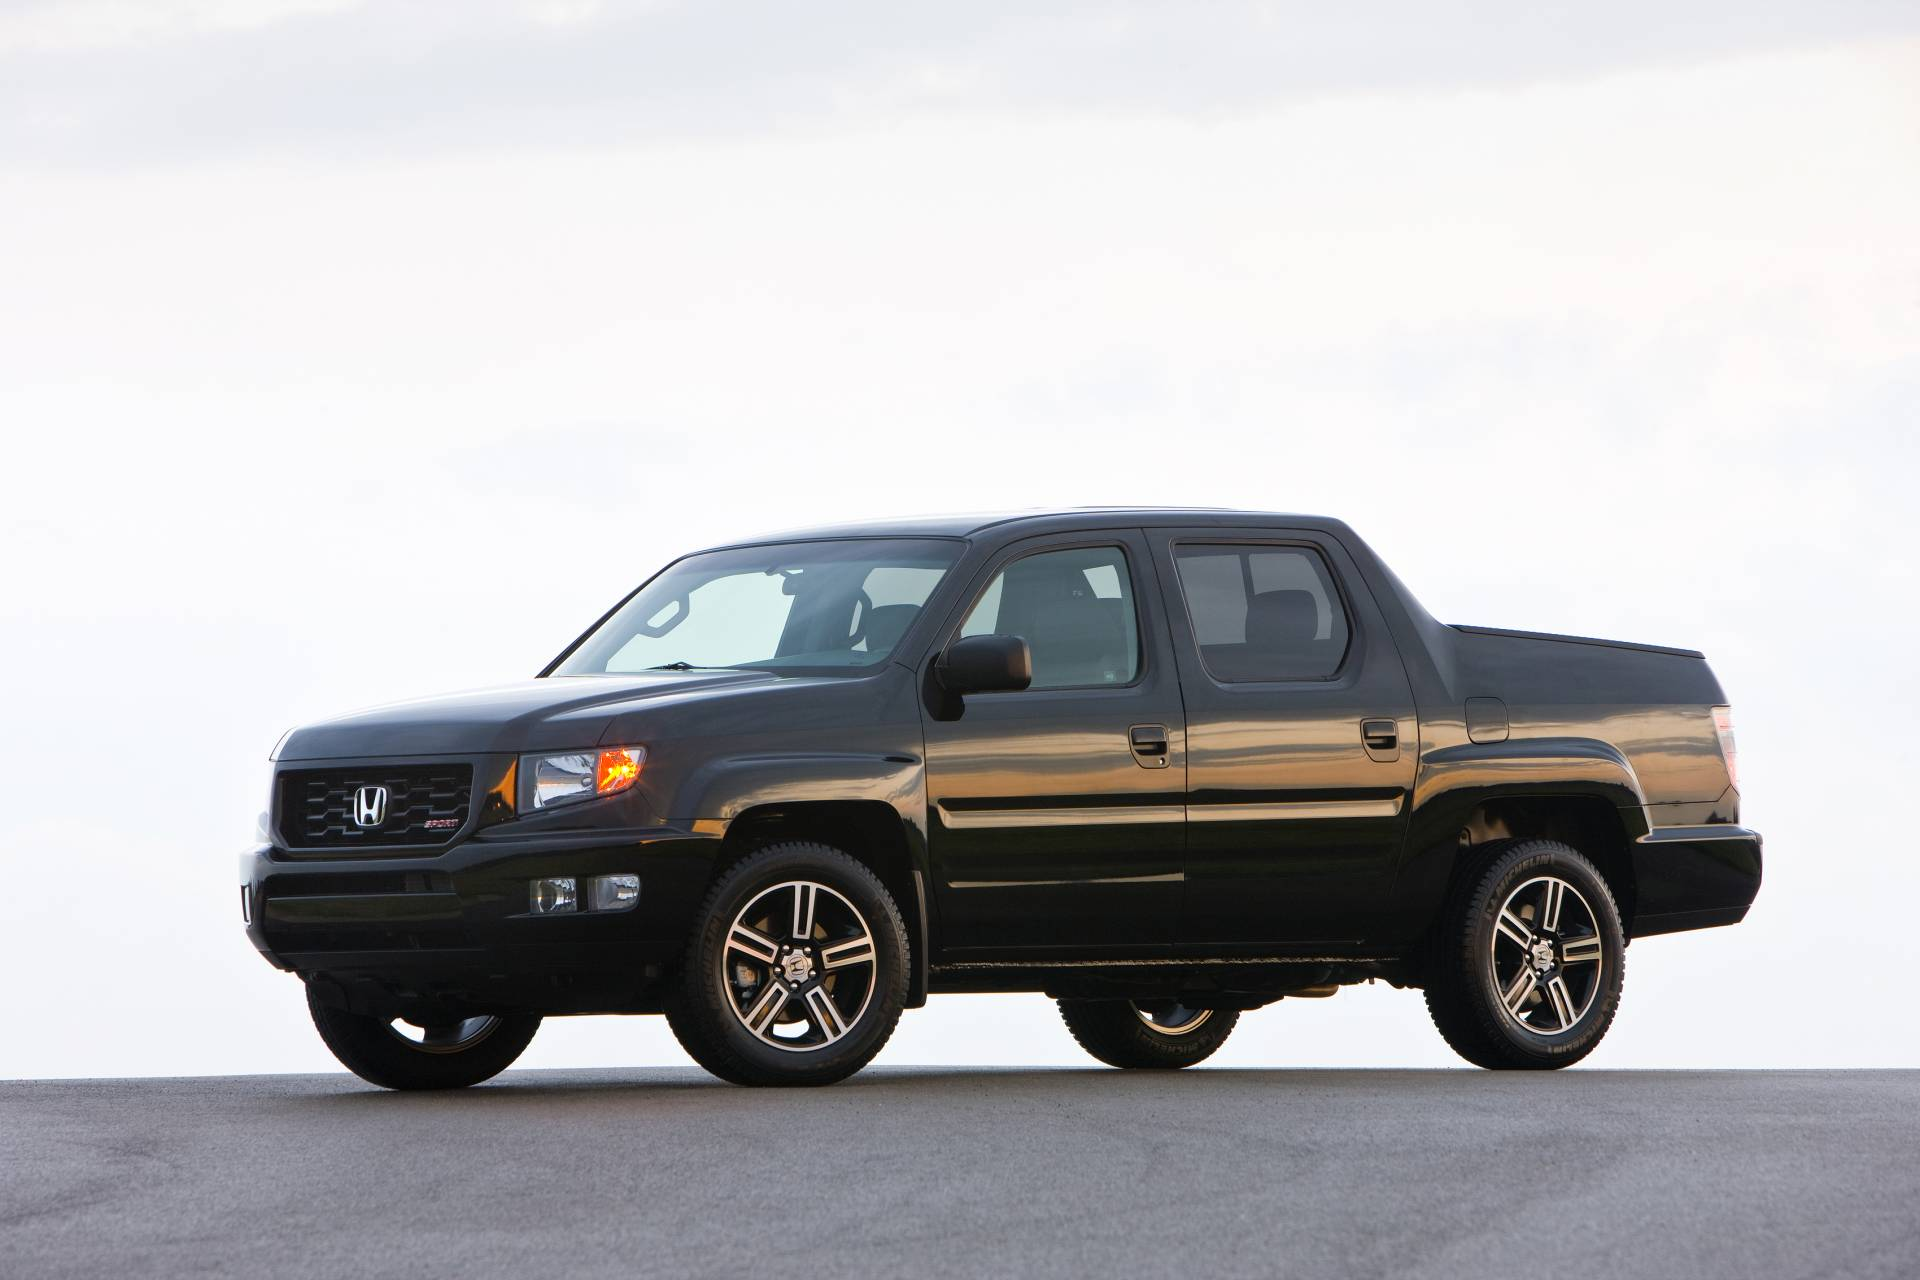 2013 honda ridgeline technical specifications and data. Black Bedroom Furniture Sets. Home Design Ideas